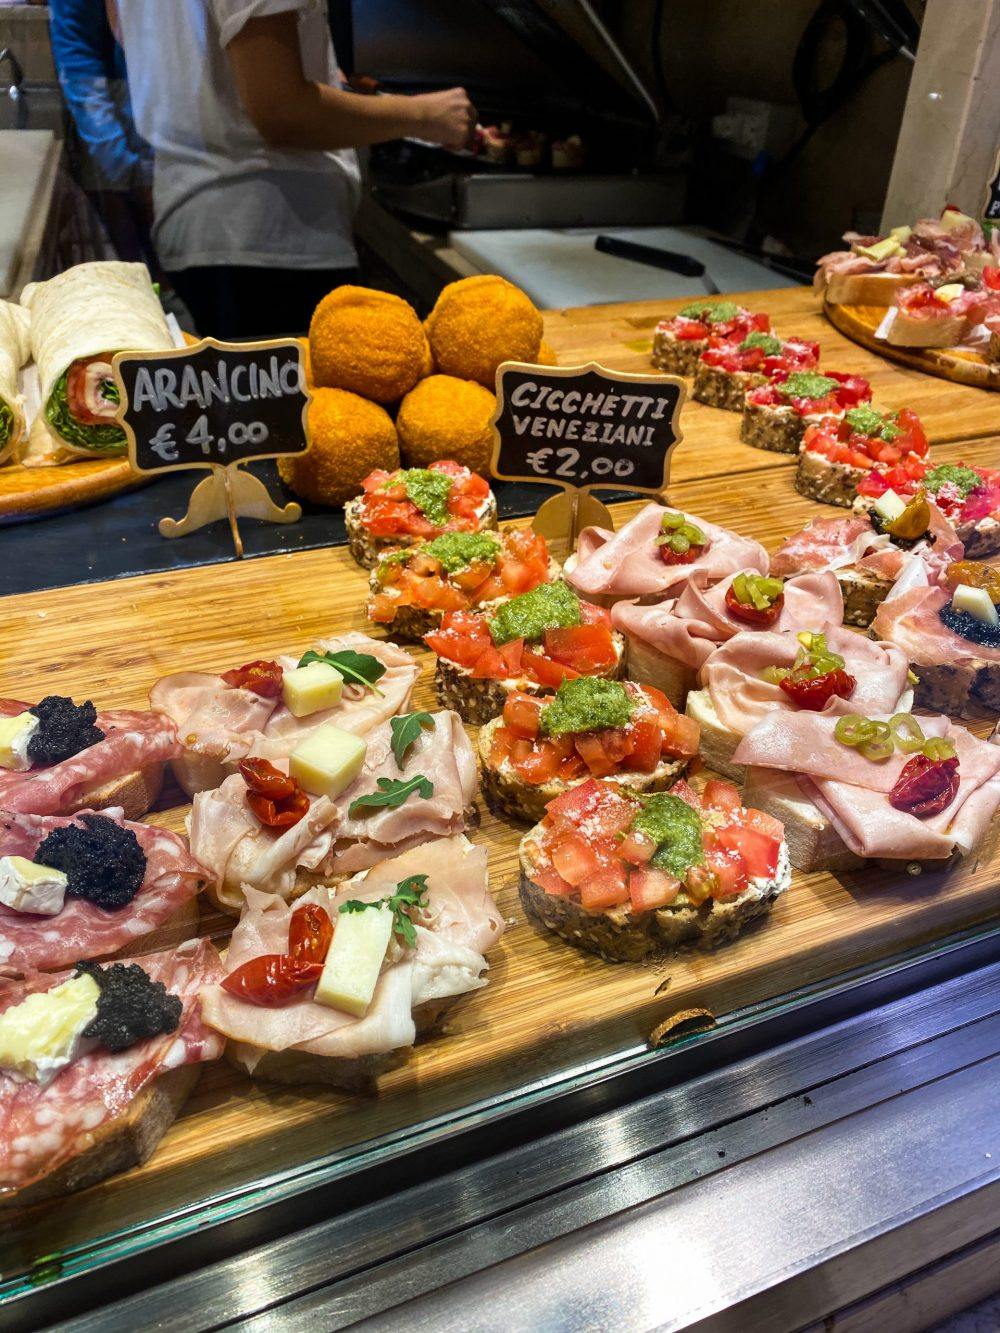 Chiccchetti shop window in Venice, Italy. Chicchetti are small tapas served with drinks.